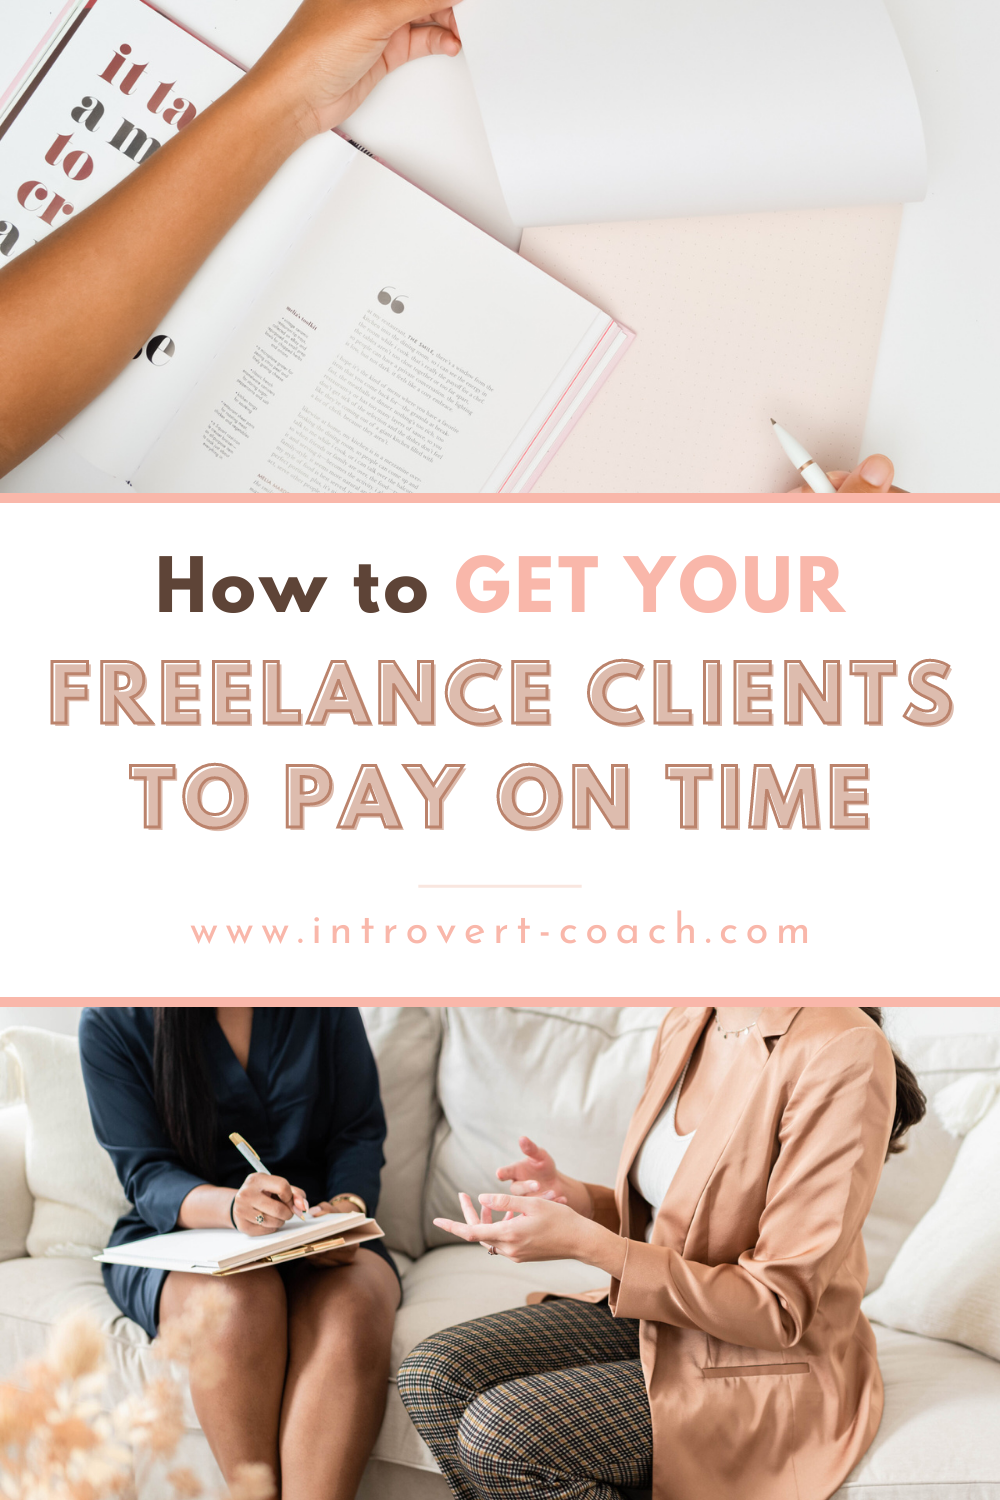 How to get your Freelance Clients to Pay on Time